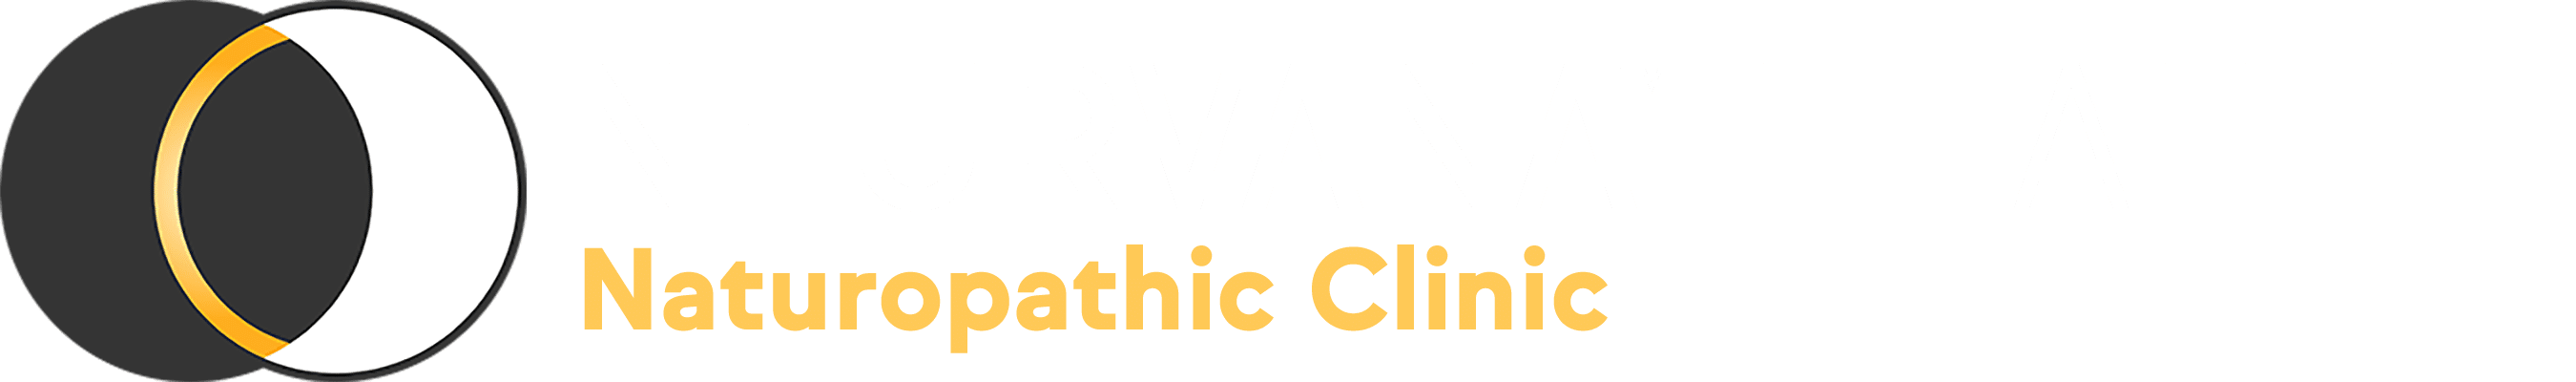 Neurvana Health naturopathic Clinic Logo White